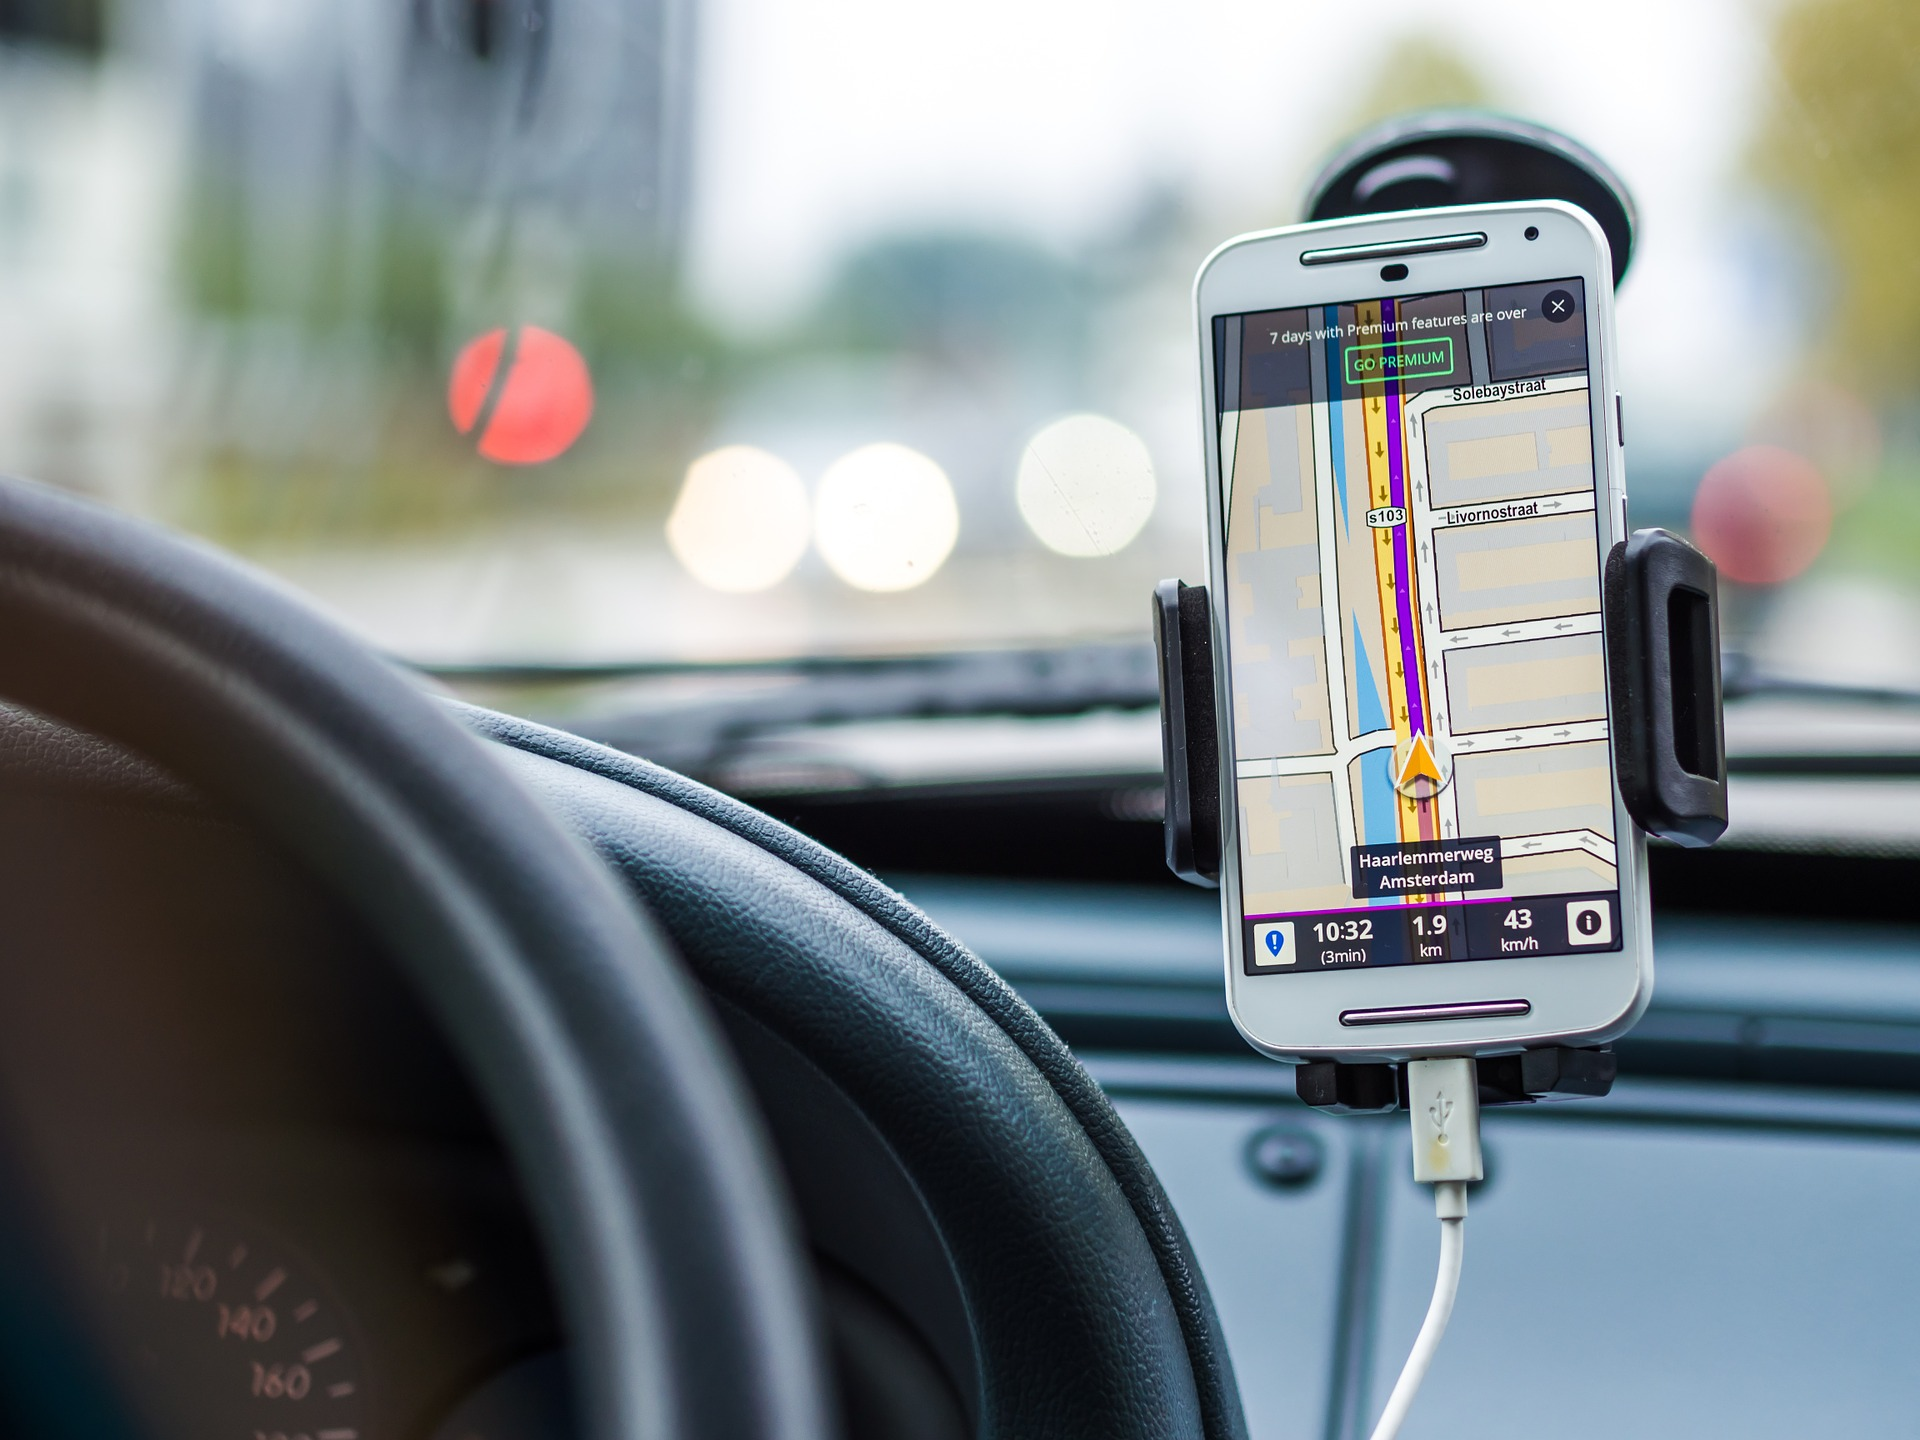 An image that shows a phone mounted sideways of car steering showing navigation